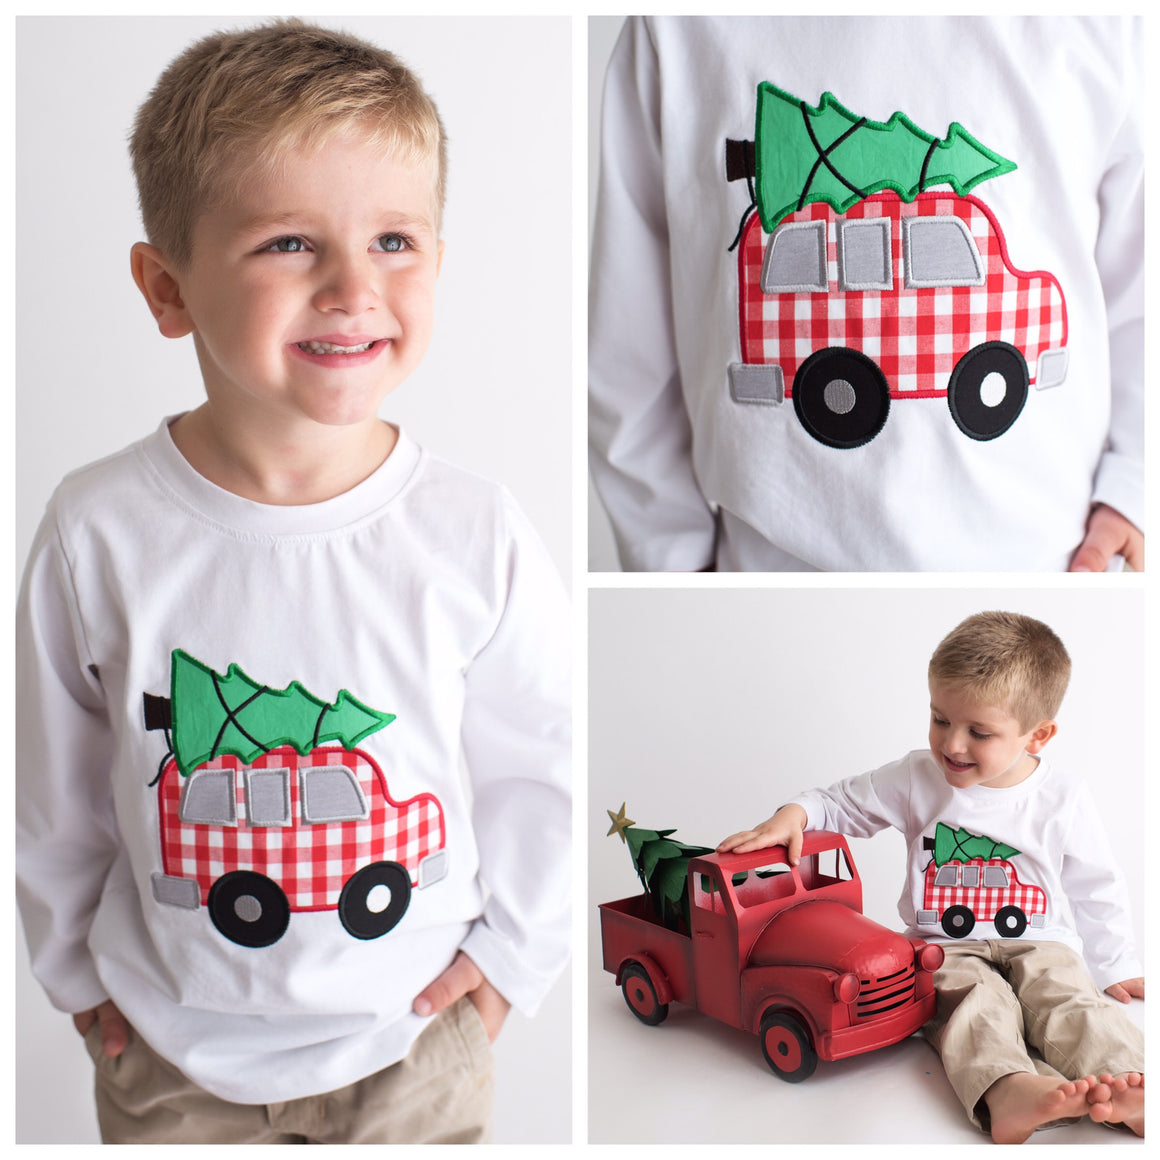 Boys White Long Sleeve Christmas Shirt with Red Gingham Car and Christmas Tree Applique